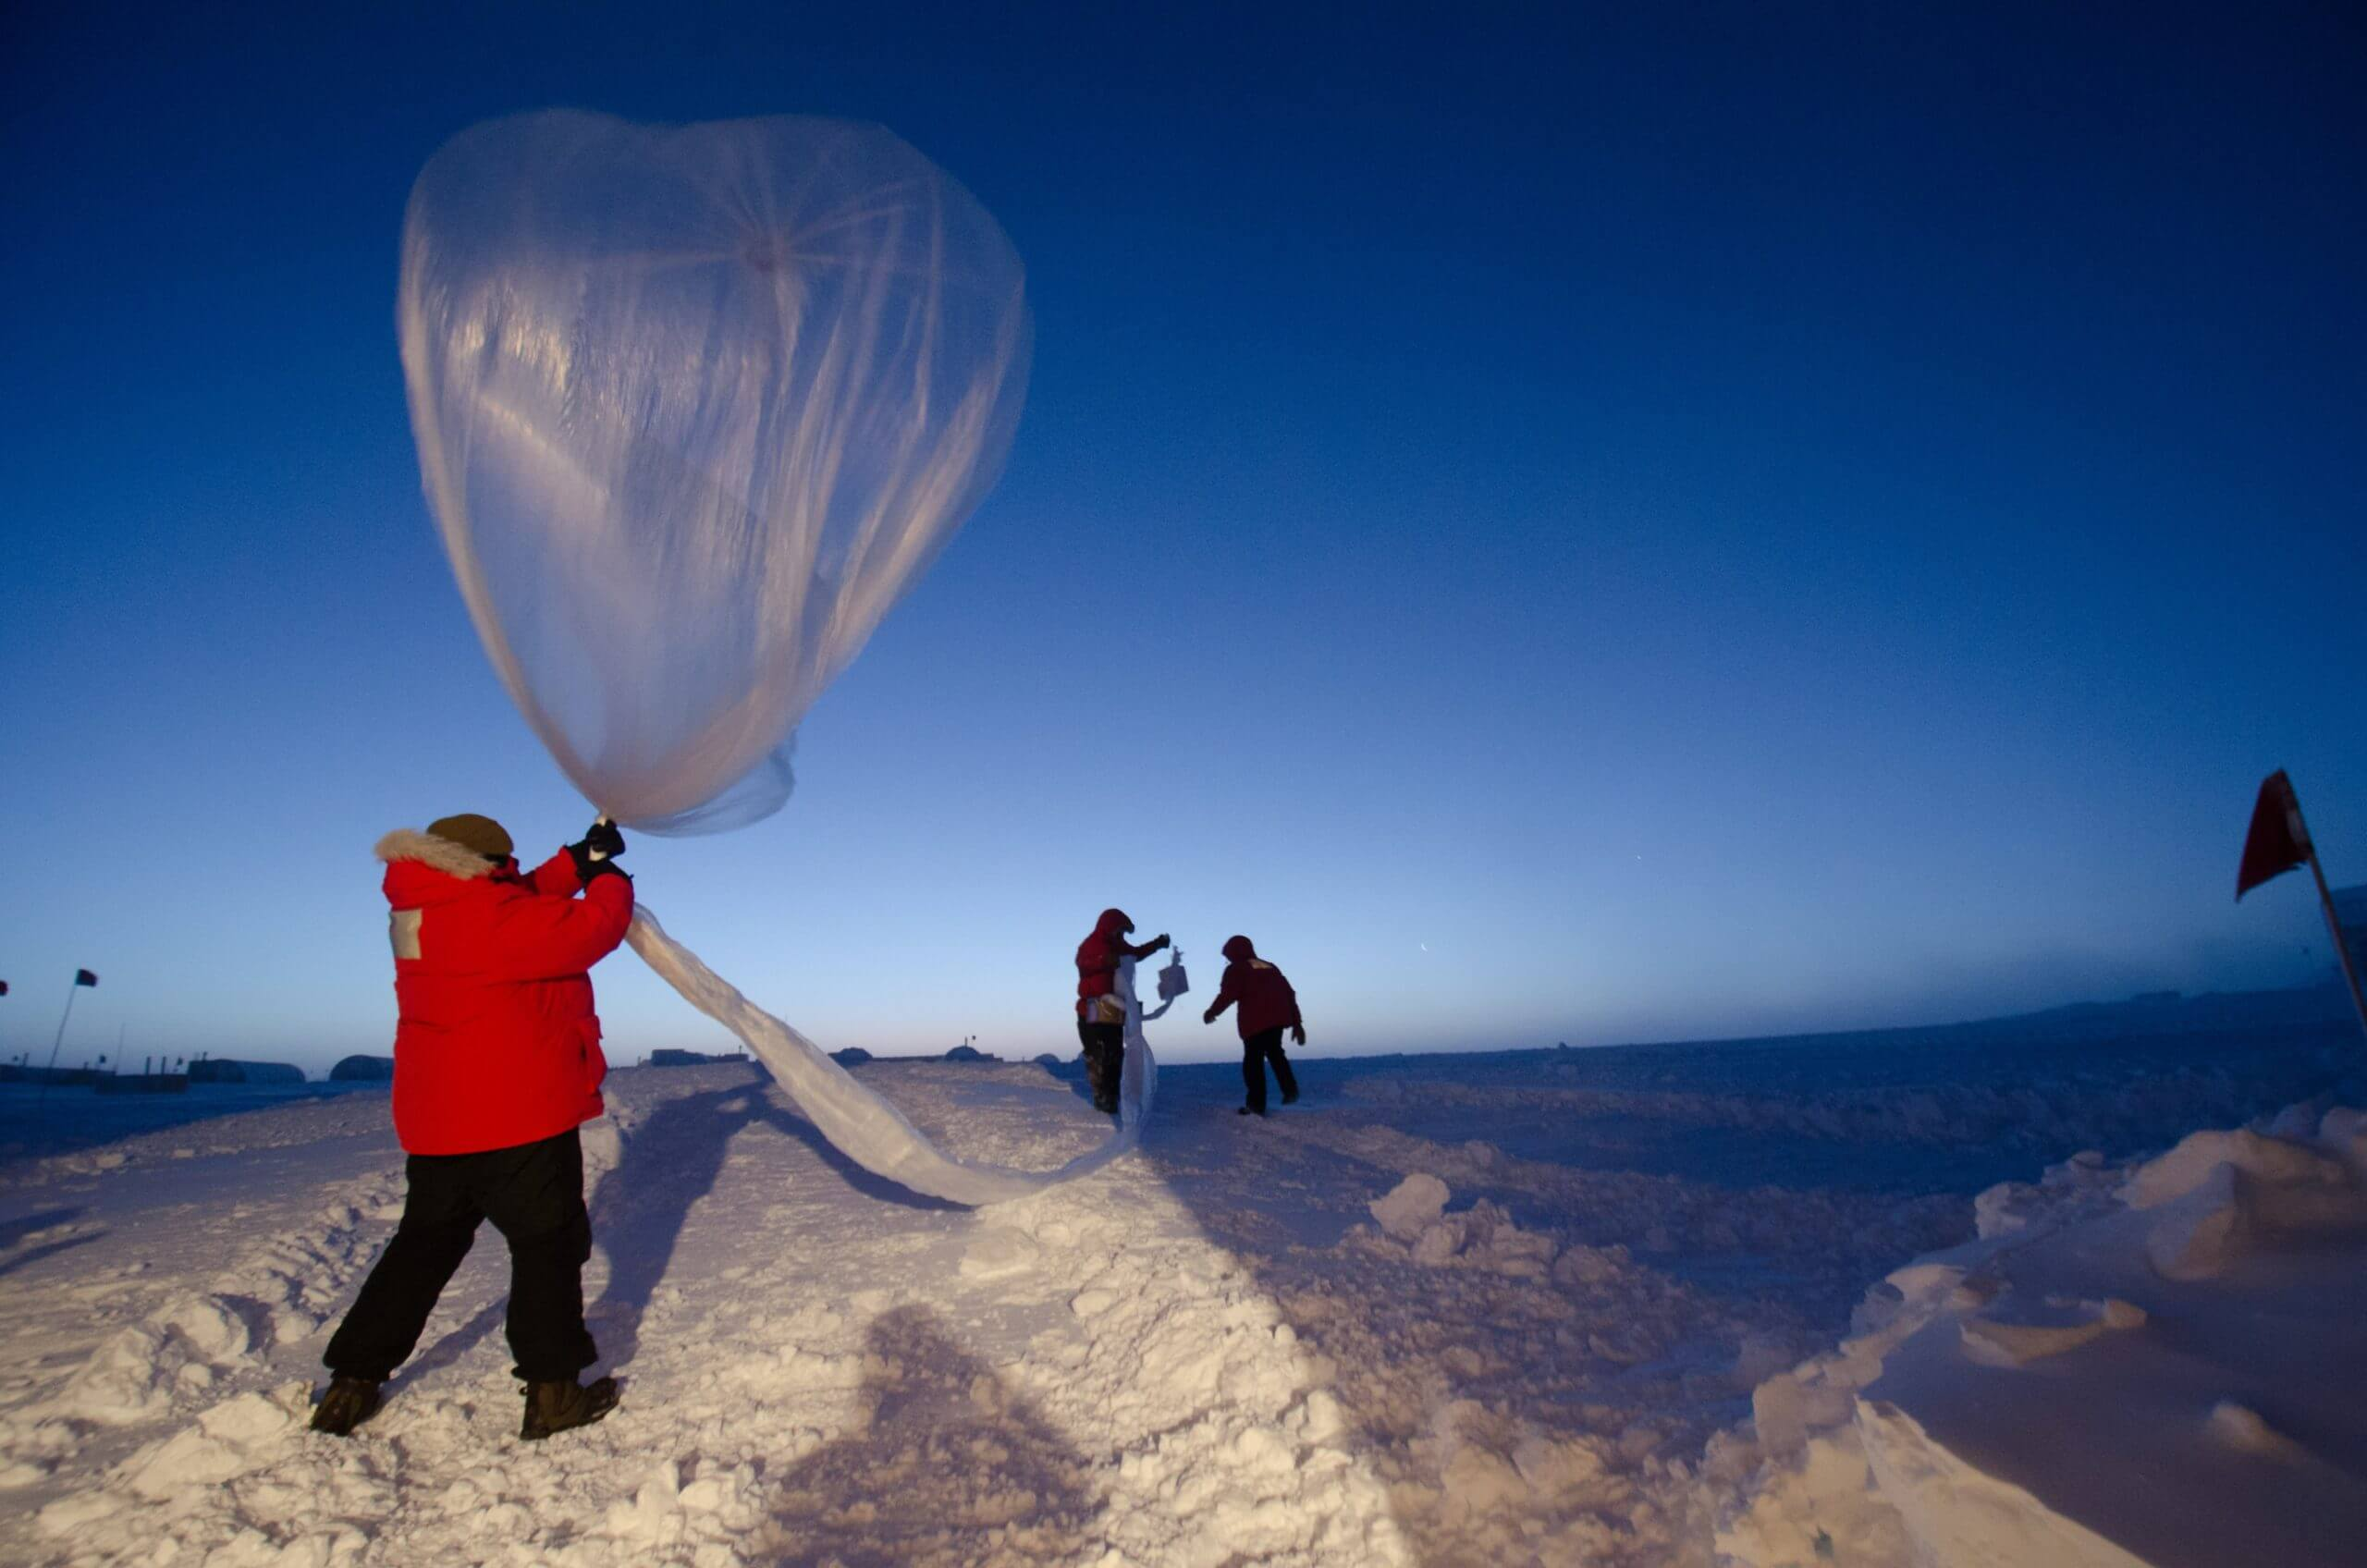 a group of people conducting an experiment where one is trying to fly a balloon